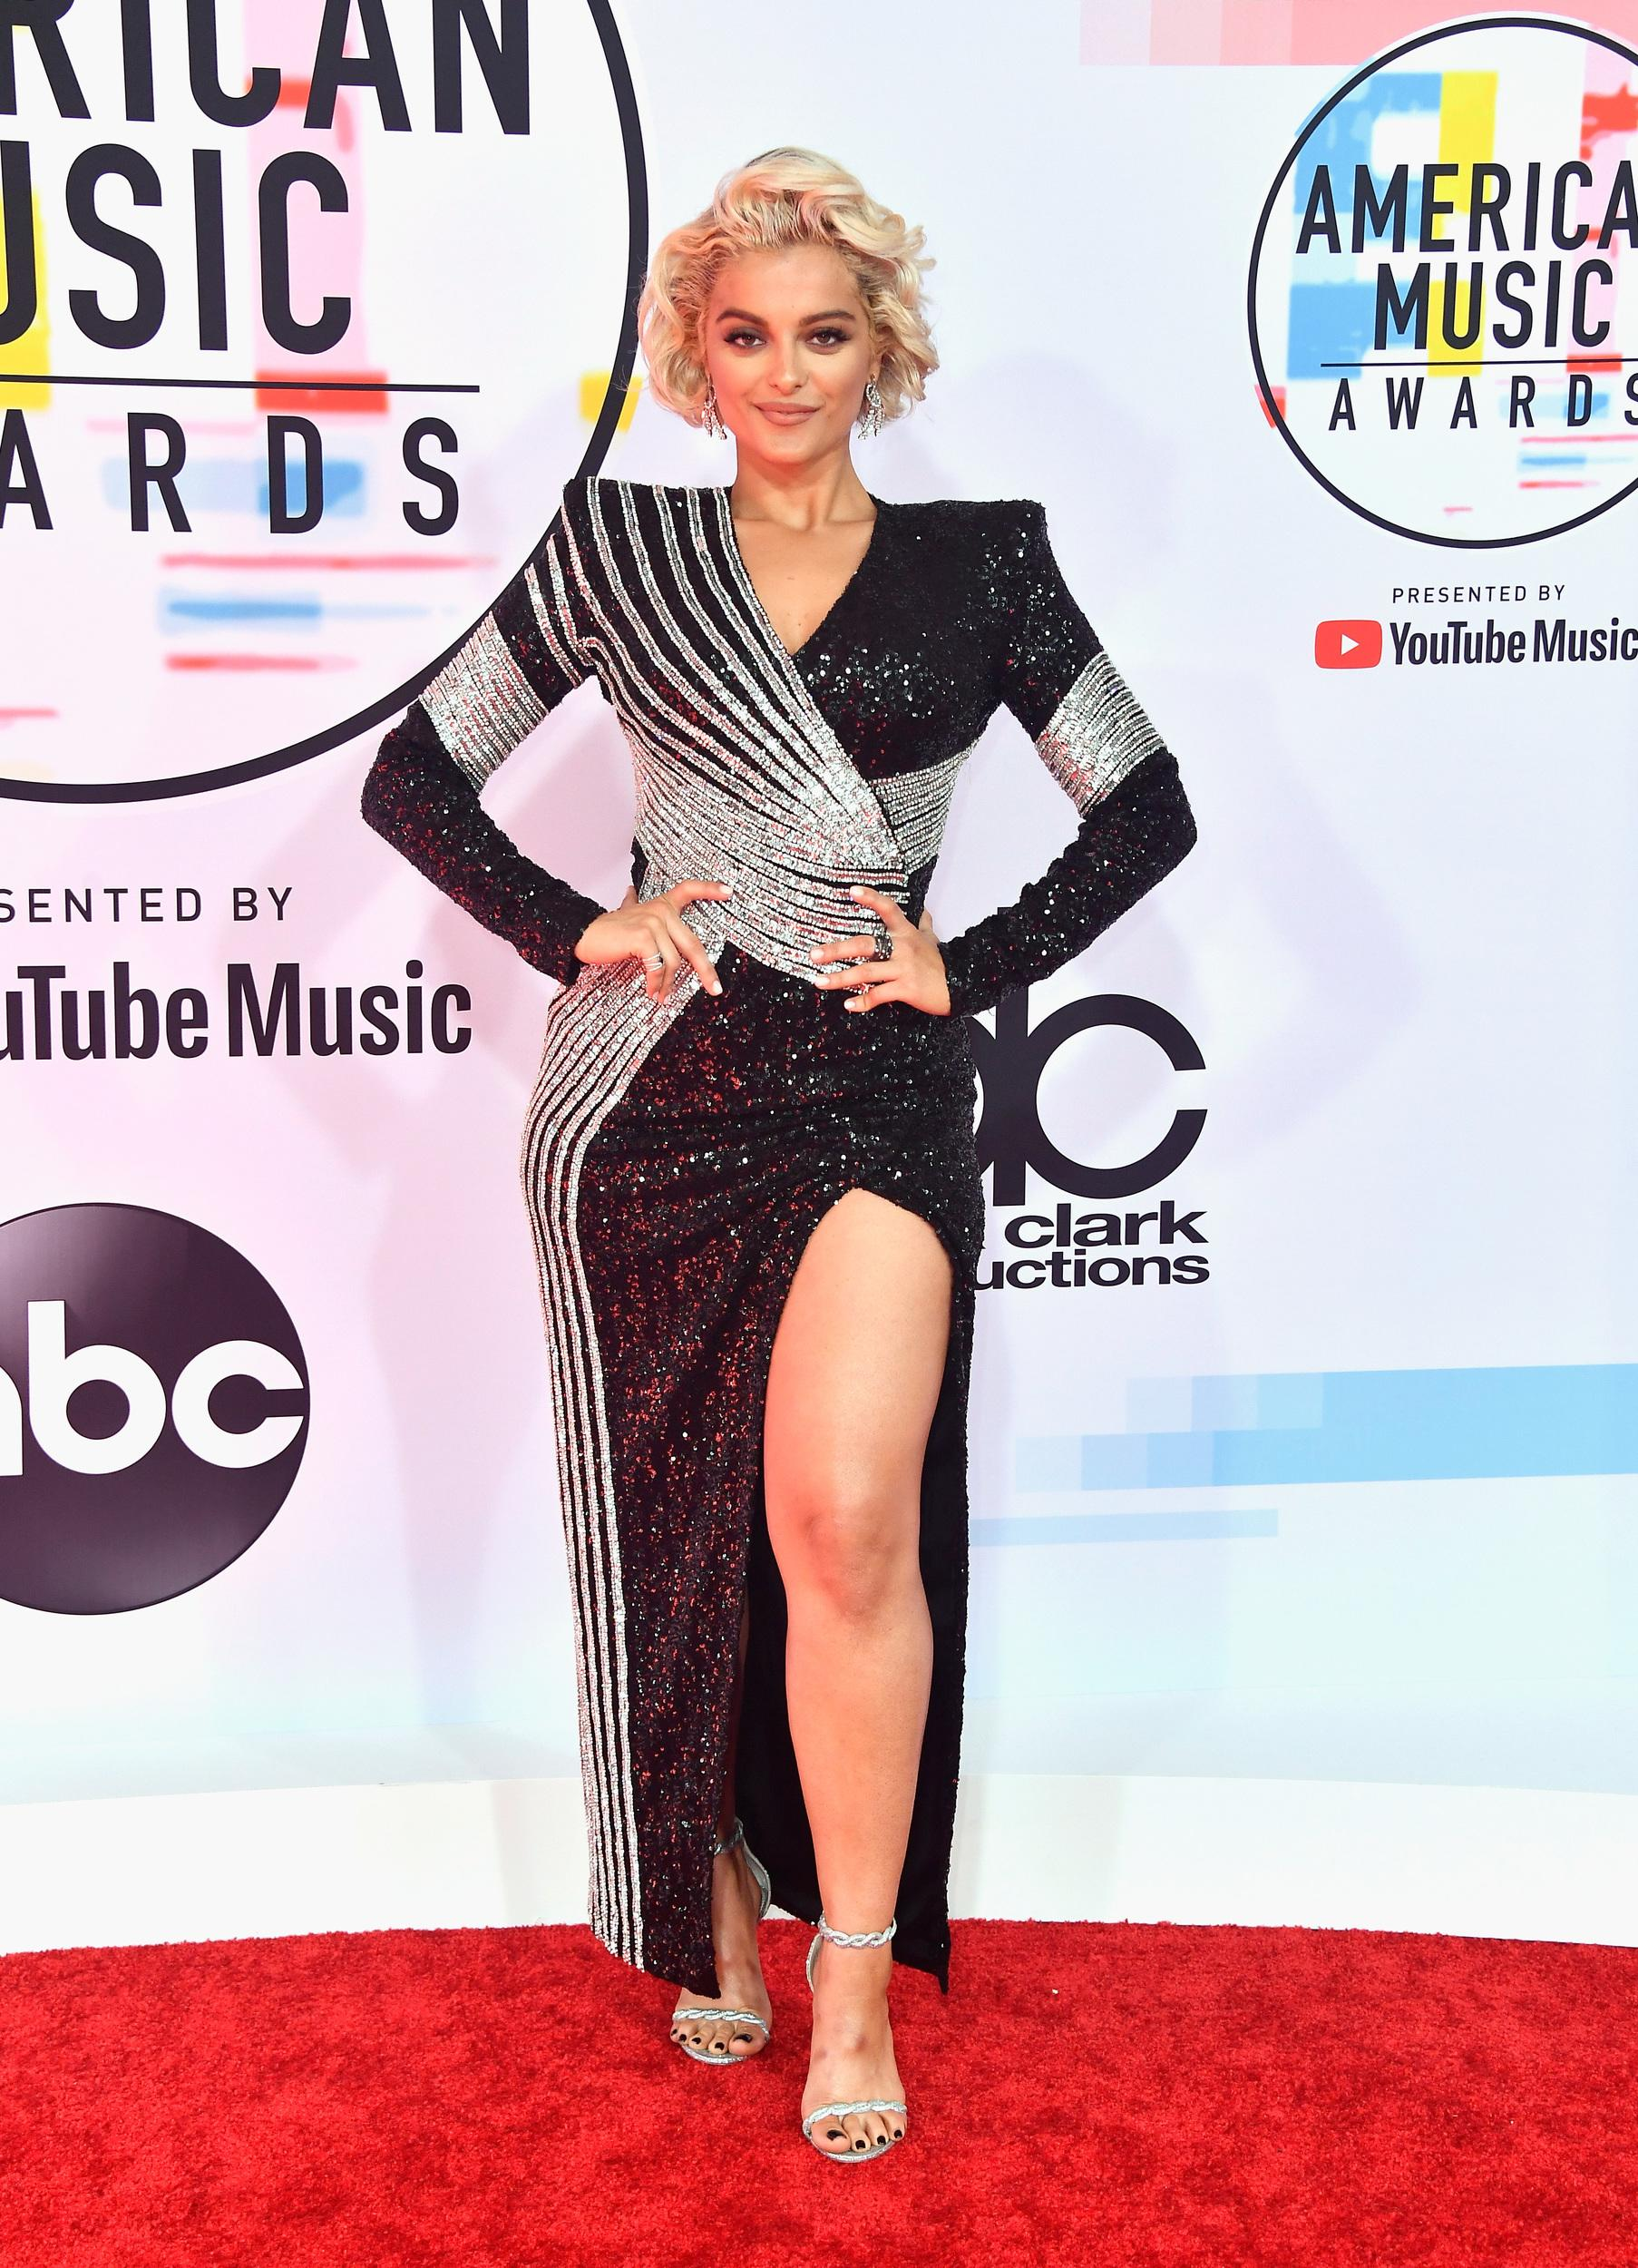 LOS ANGELES, CA - OCTOBER 09:  Bebe Rexha attends the 2018 American Music Awards at Microsoft Theater on October 9, 2018 in Los Angeles, California.  (Photo by Frazer Harrison/Getty Images)